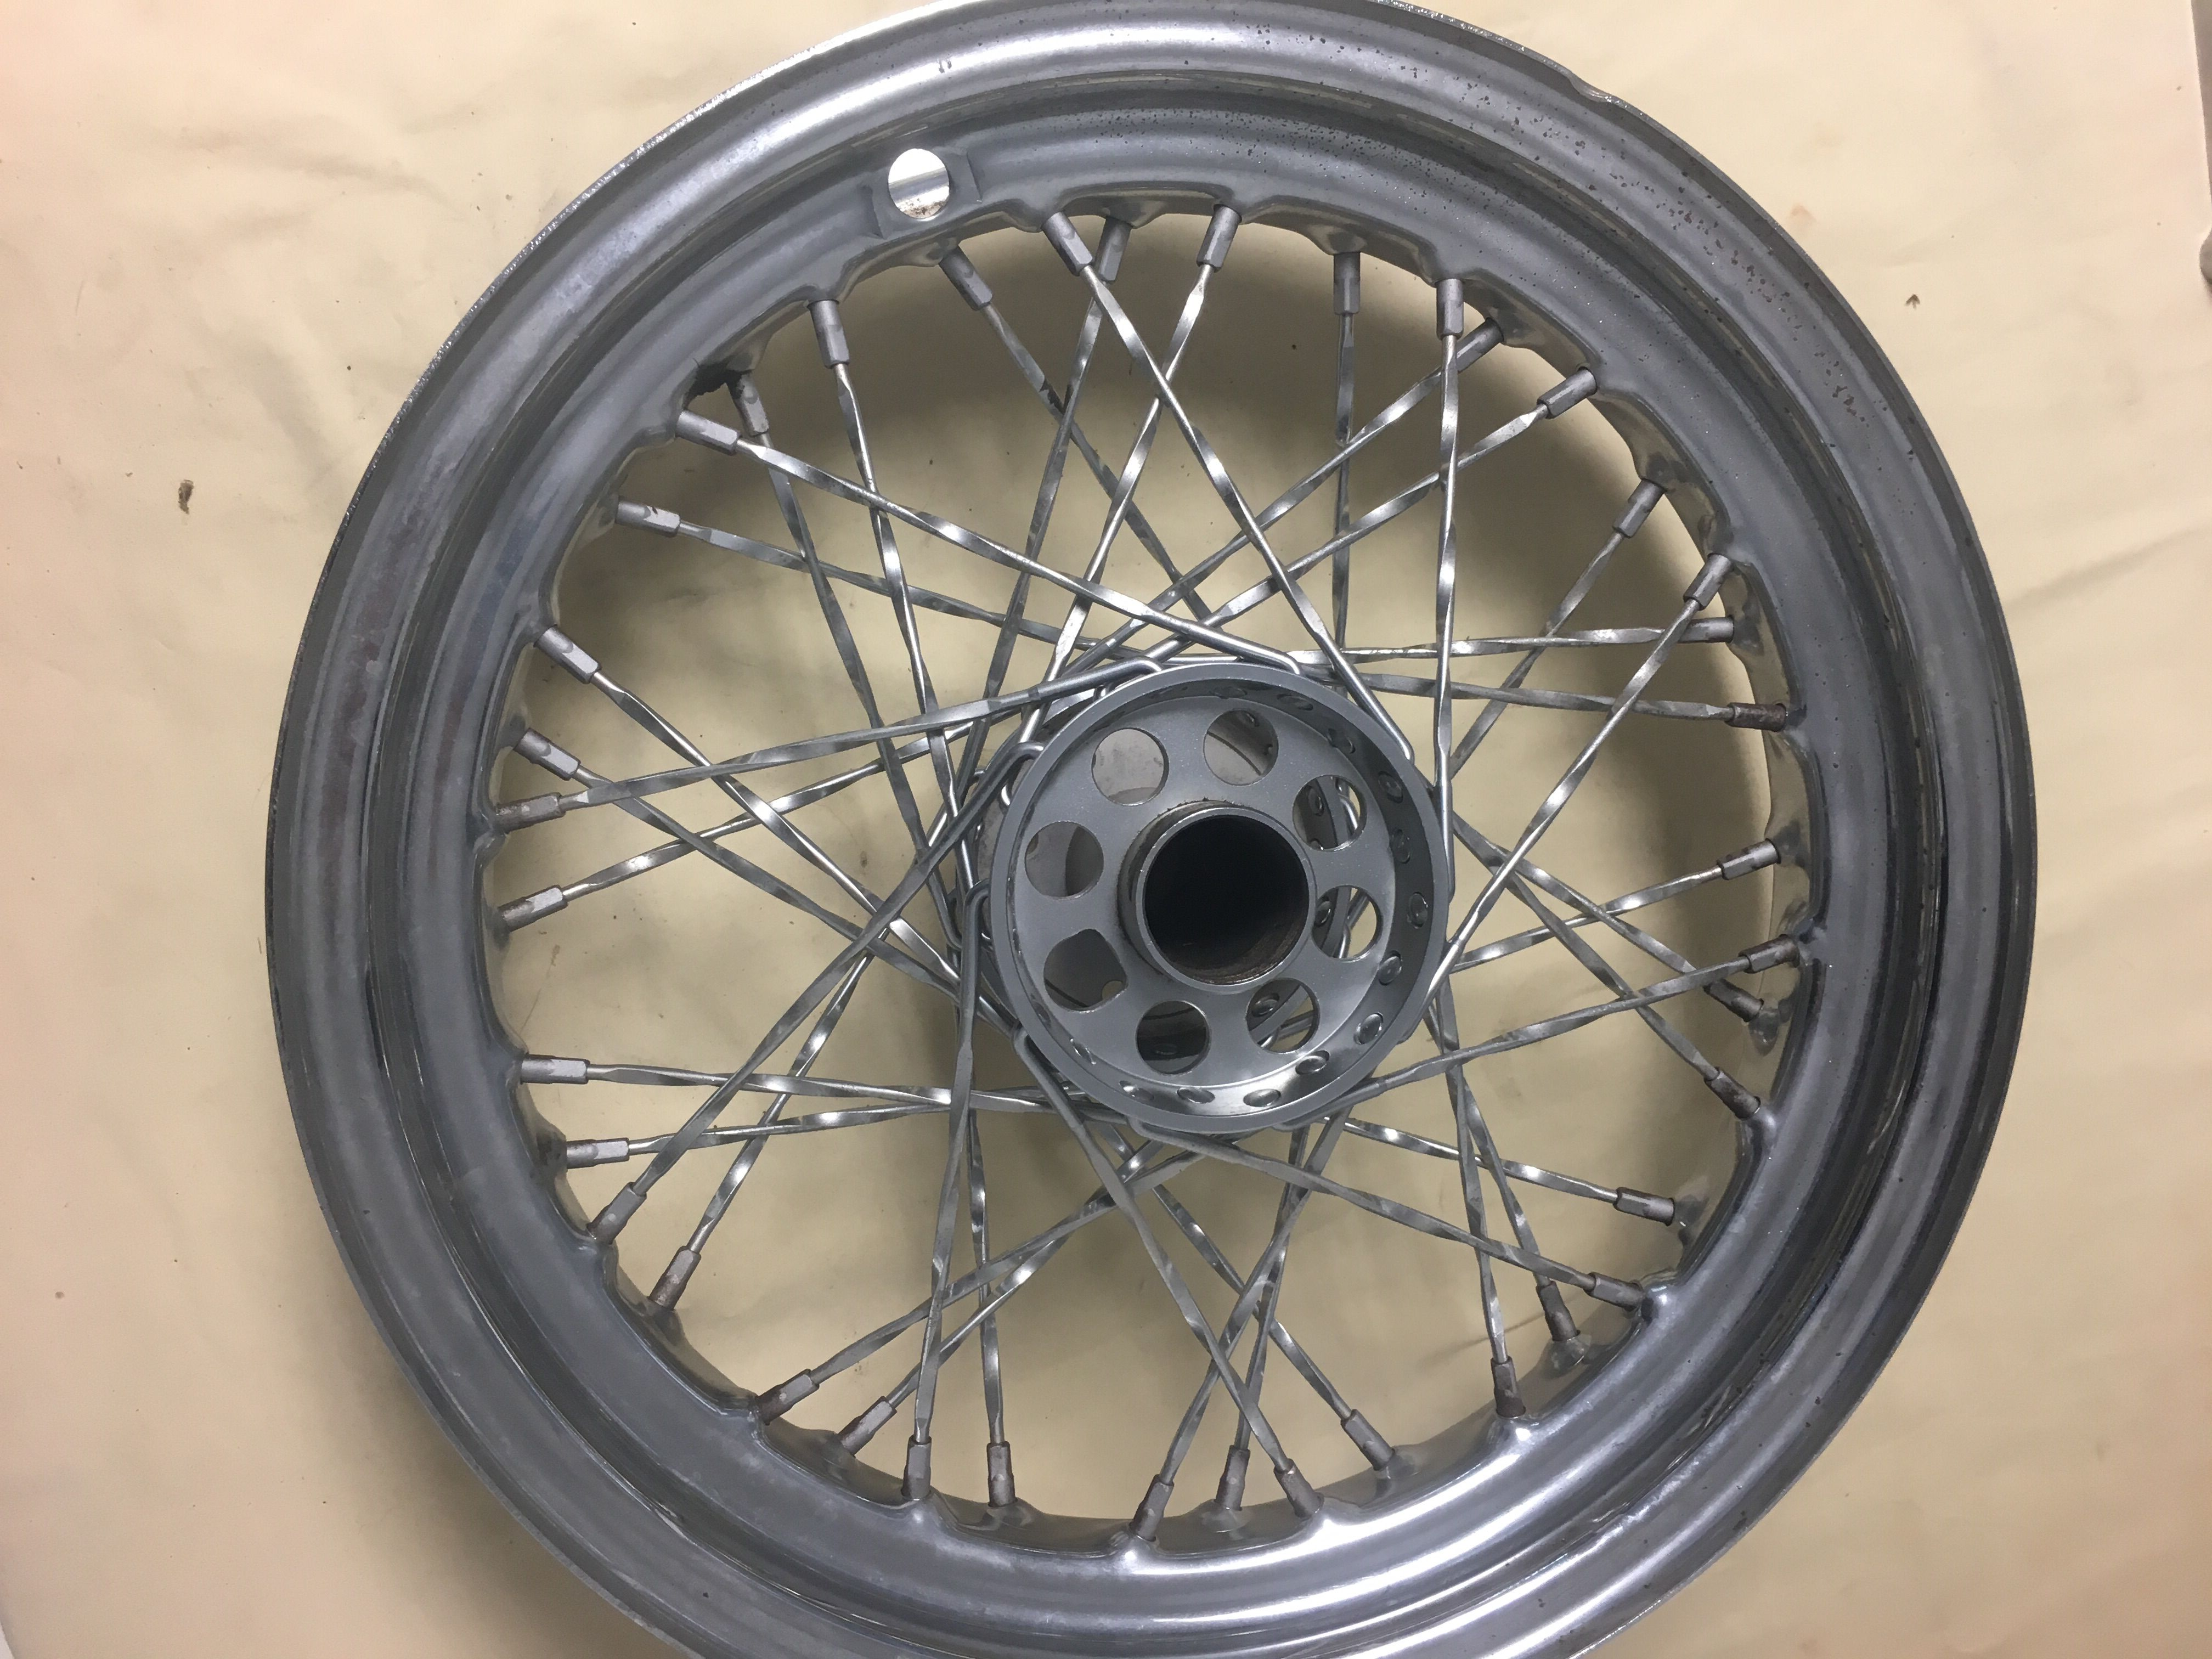 Ironhead rear wheel ( drum brake ) | www OldIronheads com